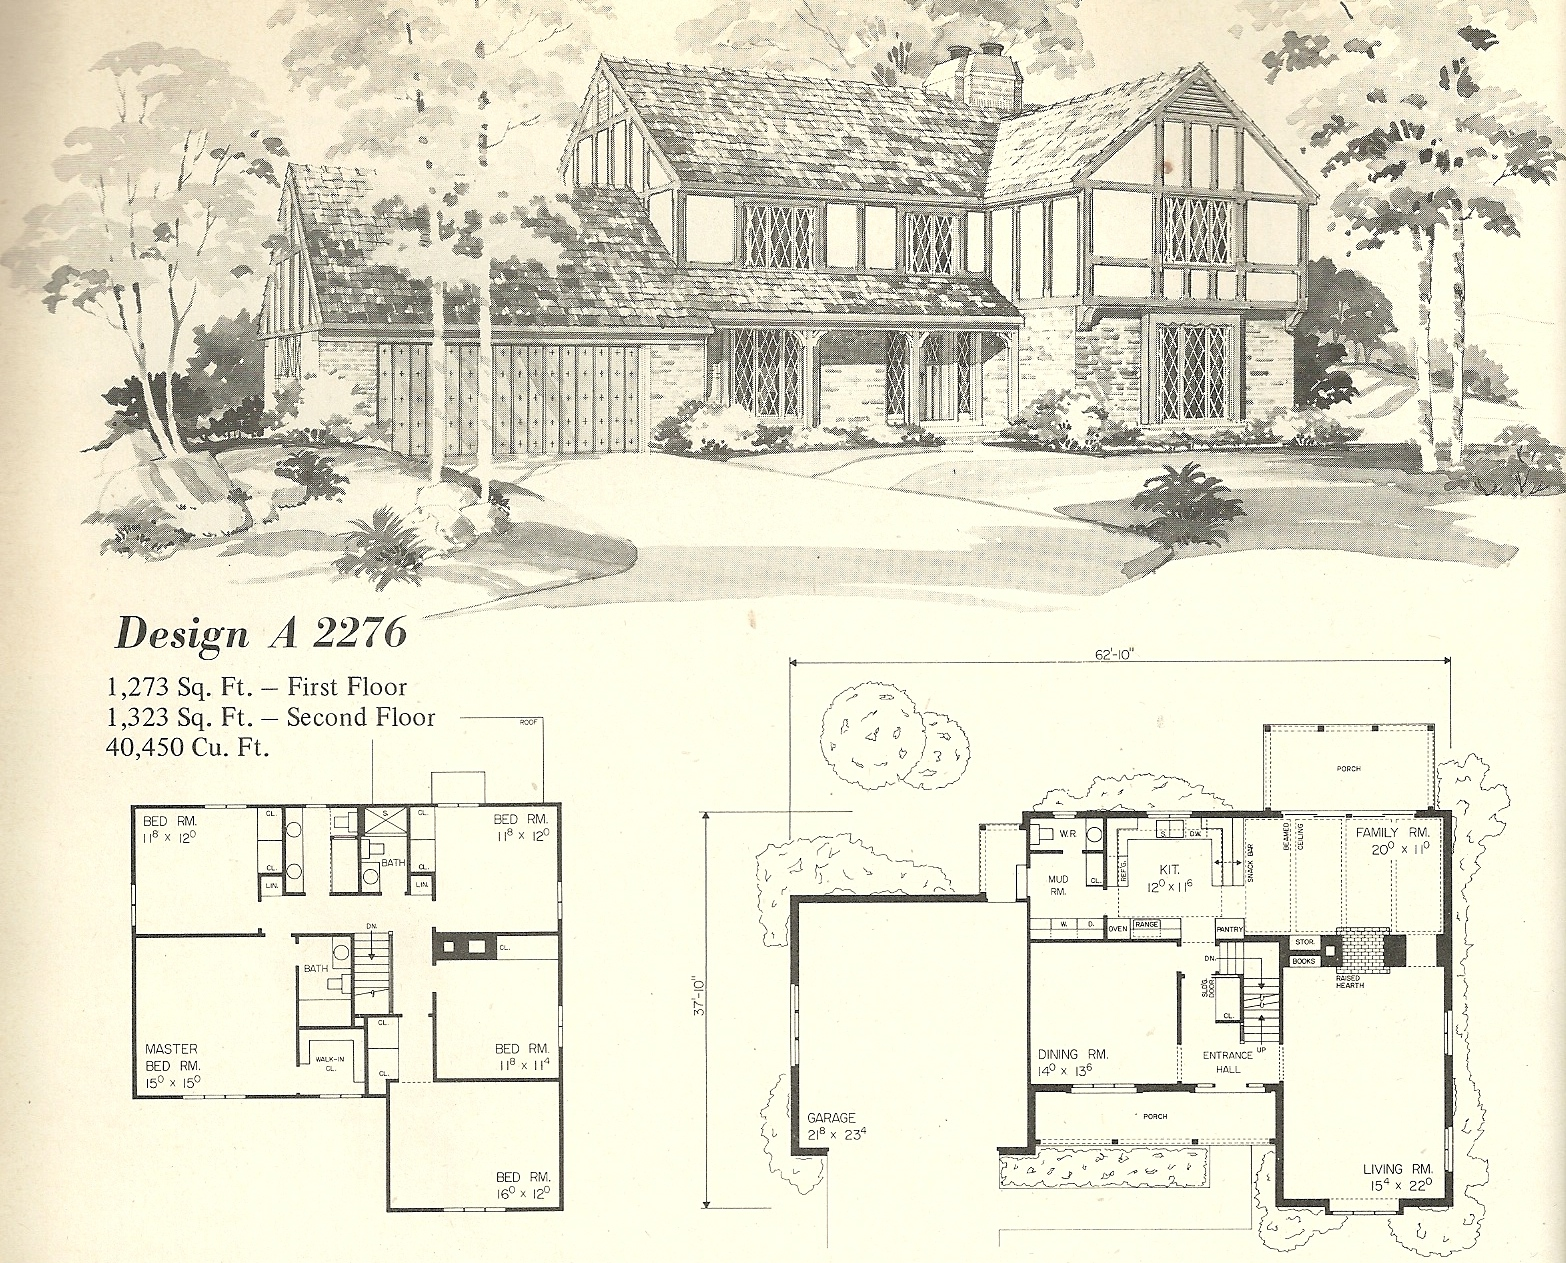 Vintage house plans 2276 antique alter ego for Tudor house plans with photos